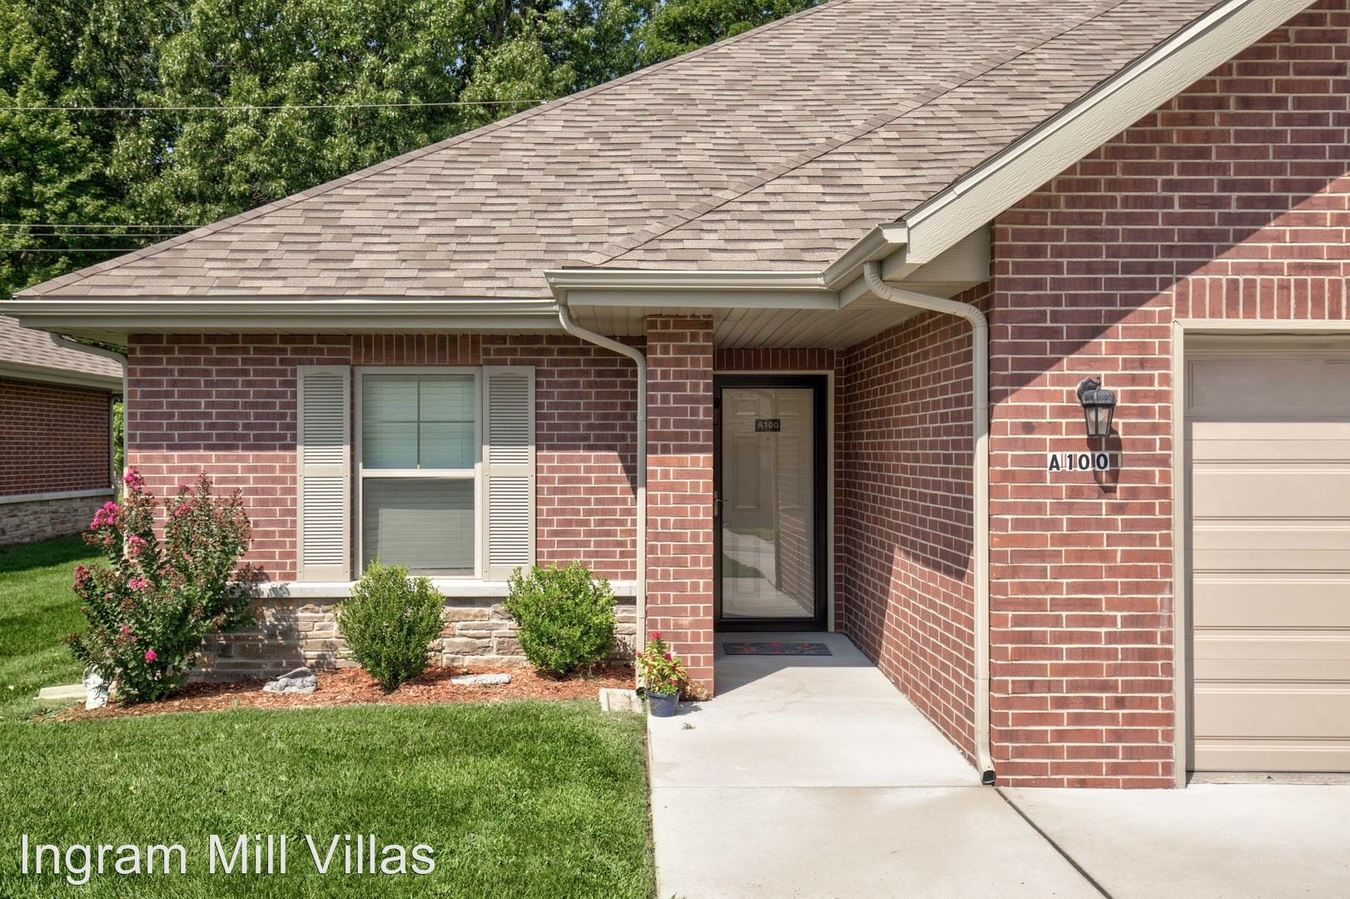 2 Bedrooms 2 Bathrooms Apartment for rent at 1225 S Ingram Mill Rd in Springfield, MO